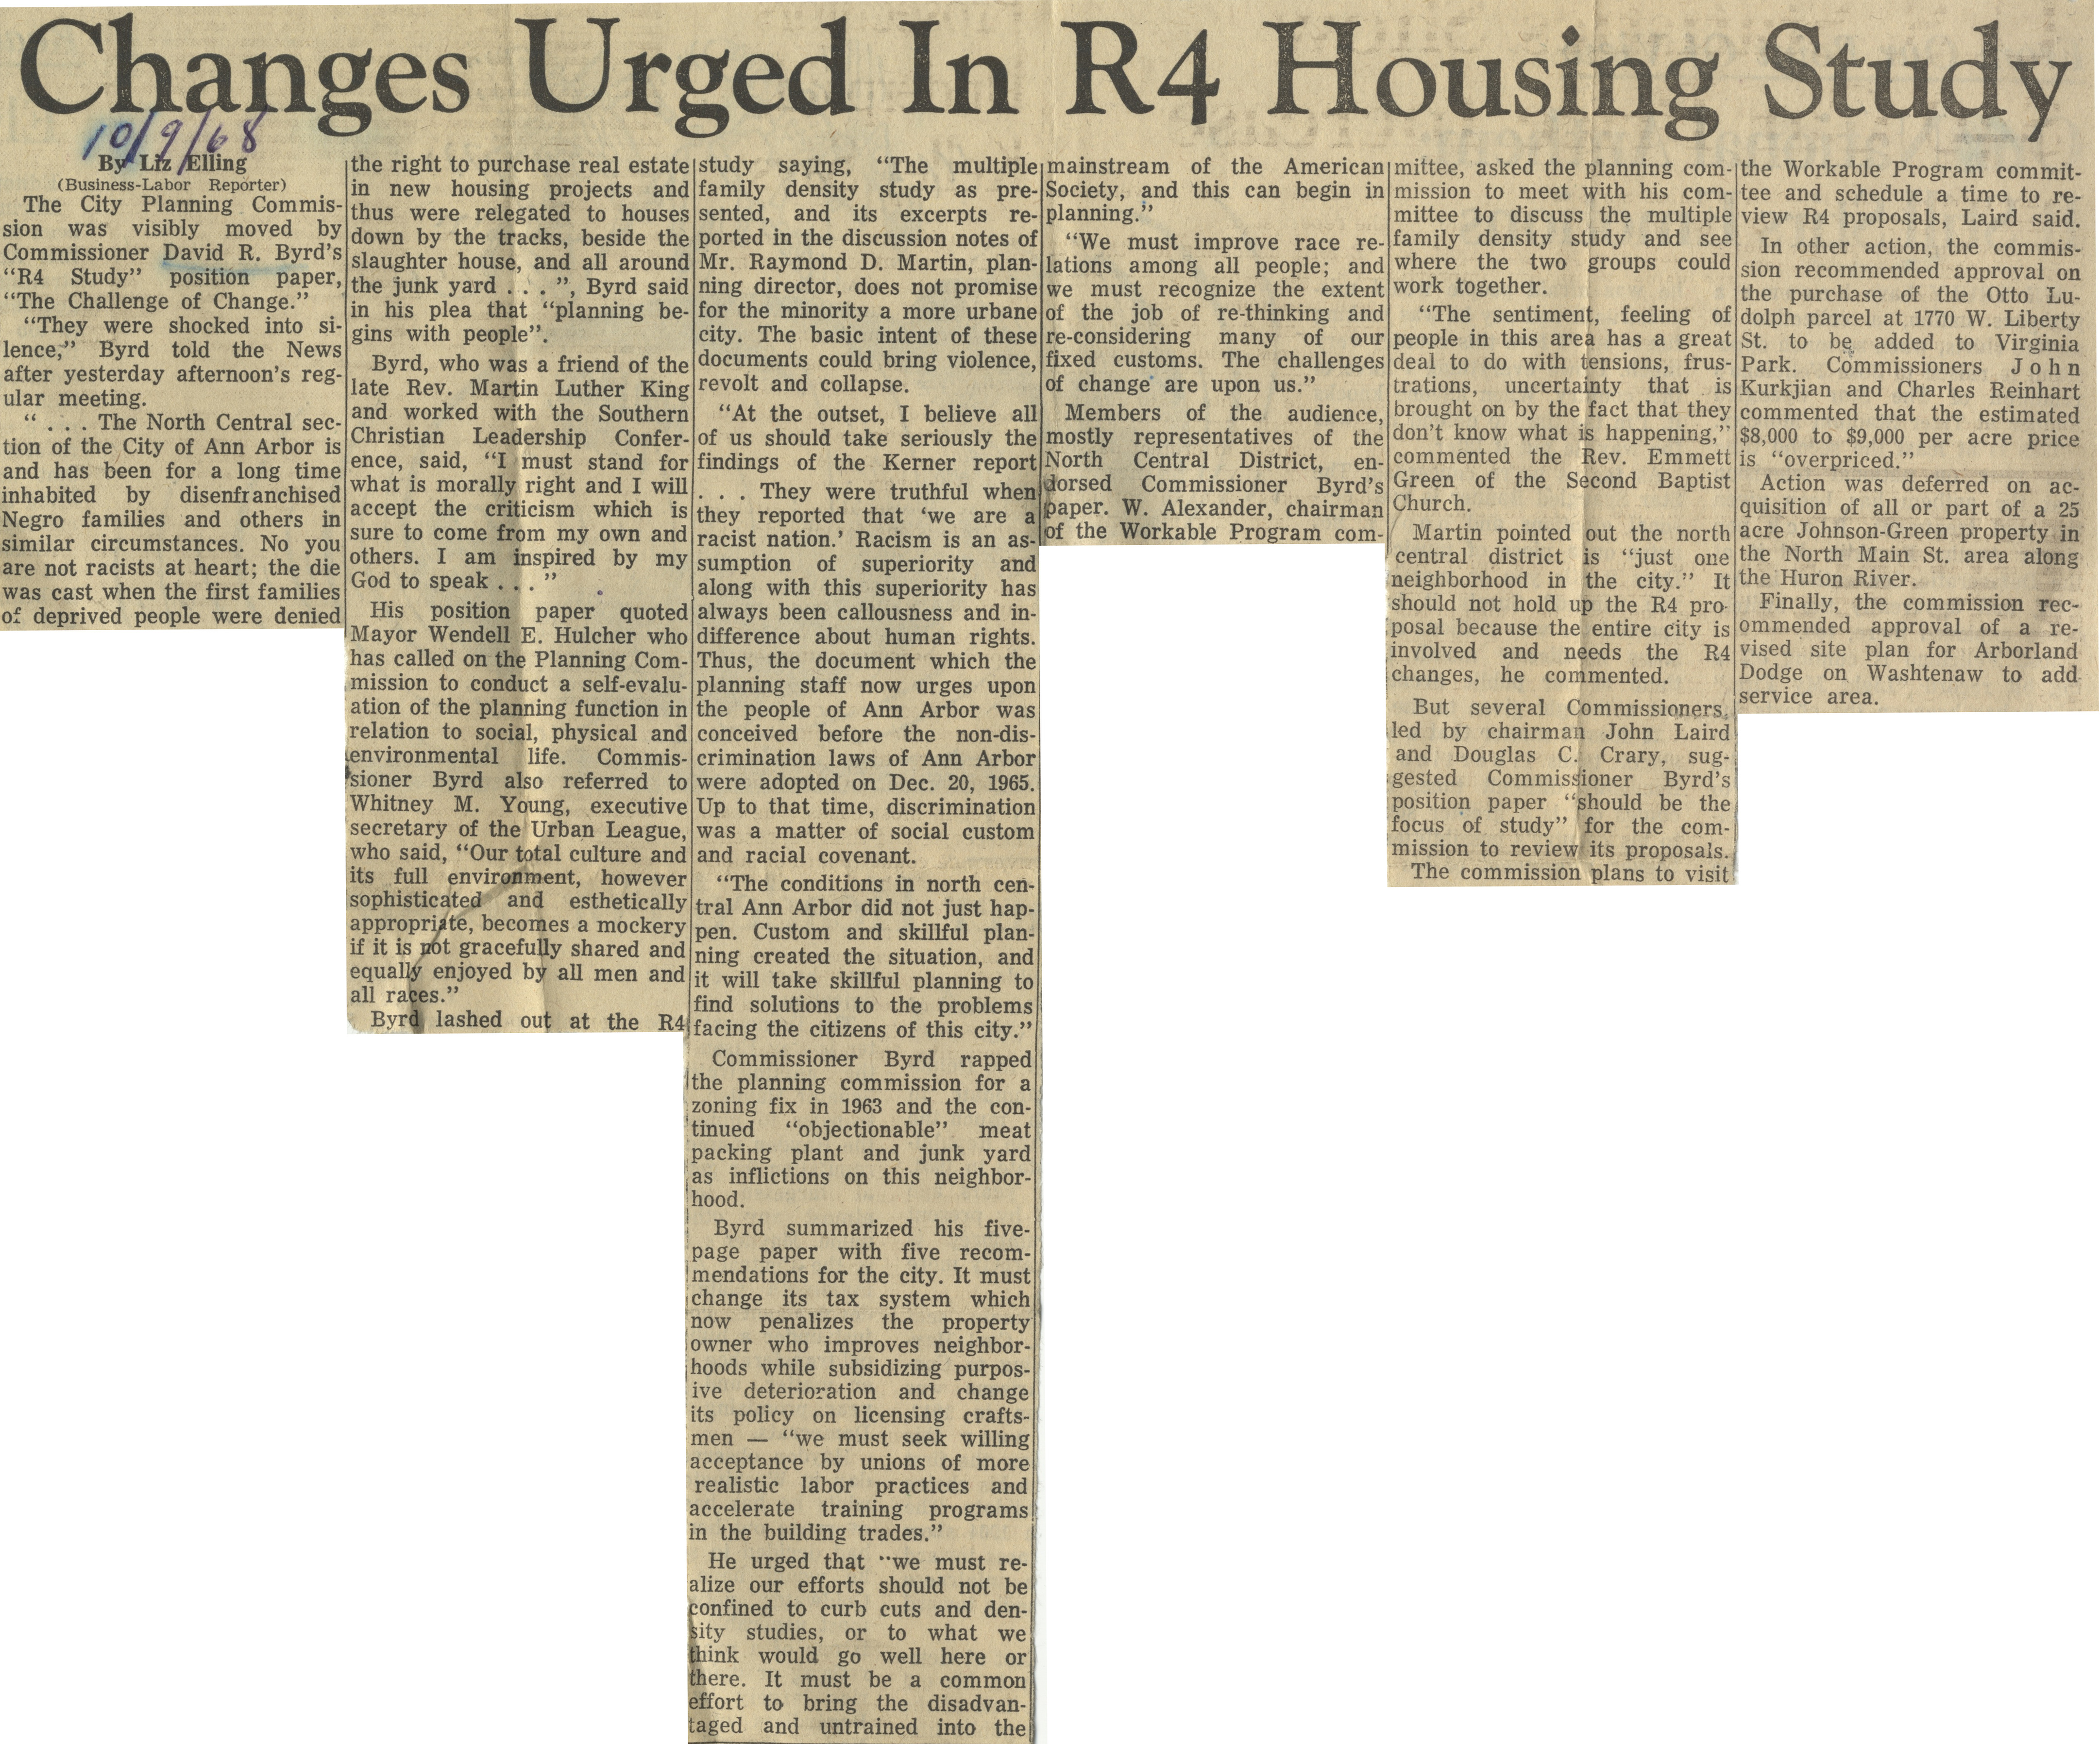 Changes Urged in R4 Housing Study image